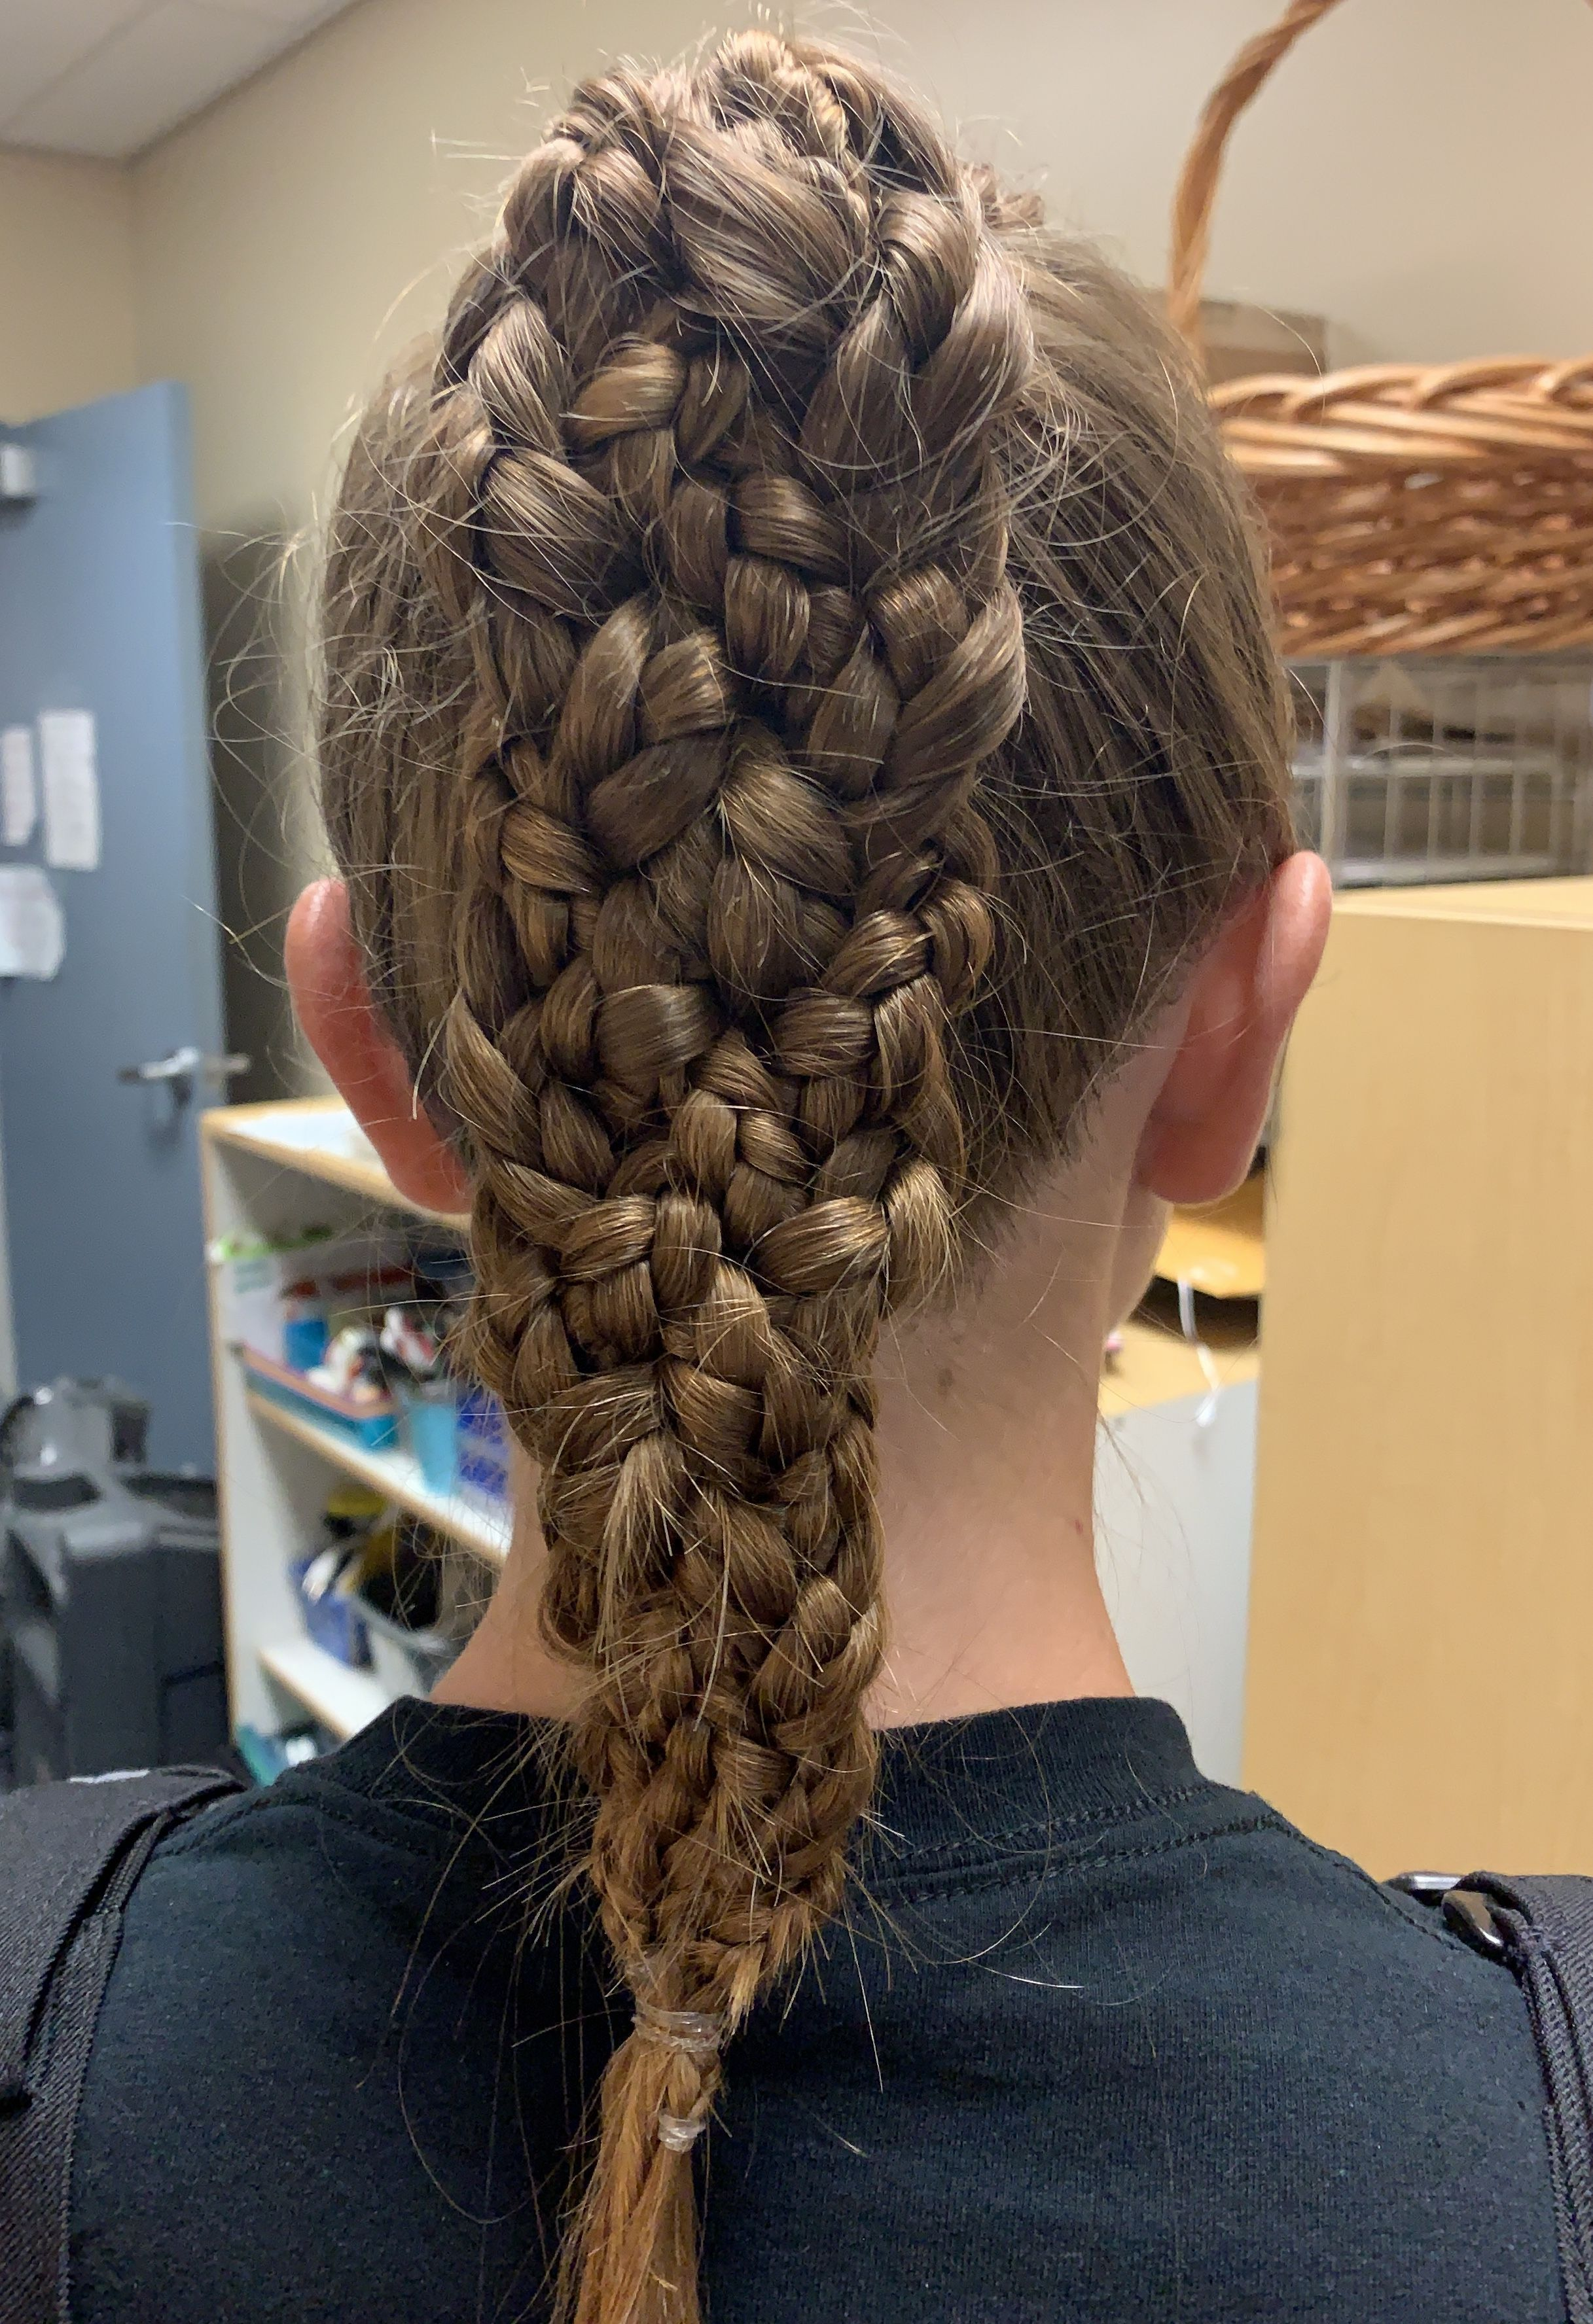 Kids Braided Hairstyle Braided Into Two Ponytails With Bangs And Beads Braided Hairstyles Kids Hairstyles Kids Braided Hairstyles